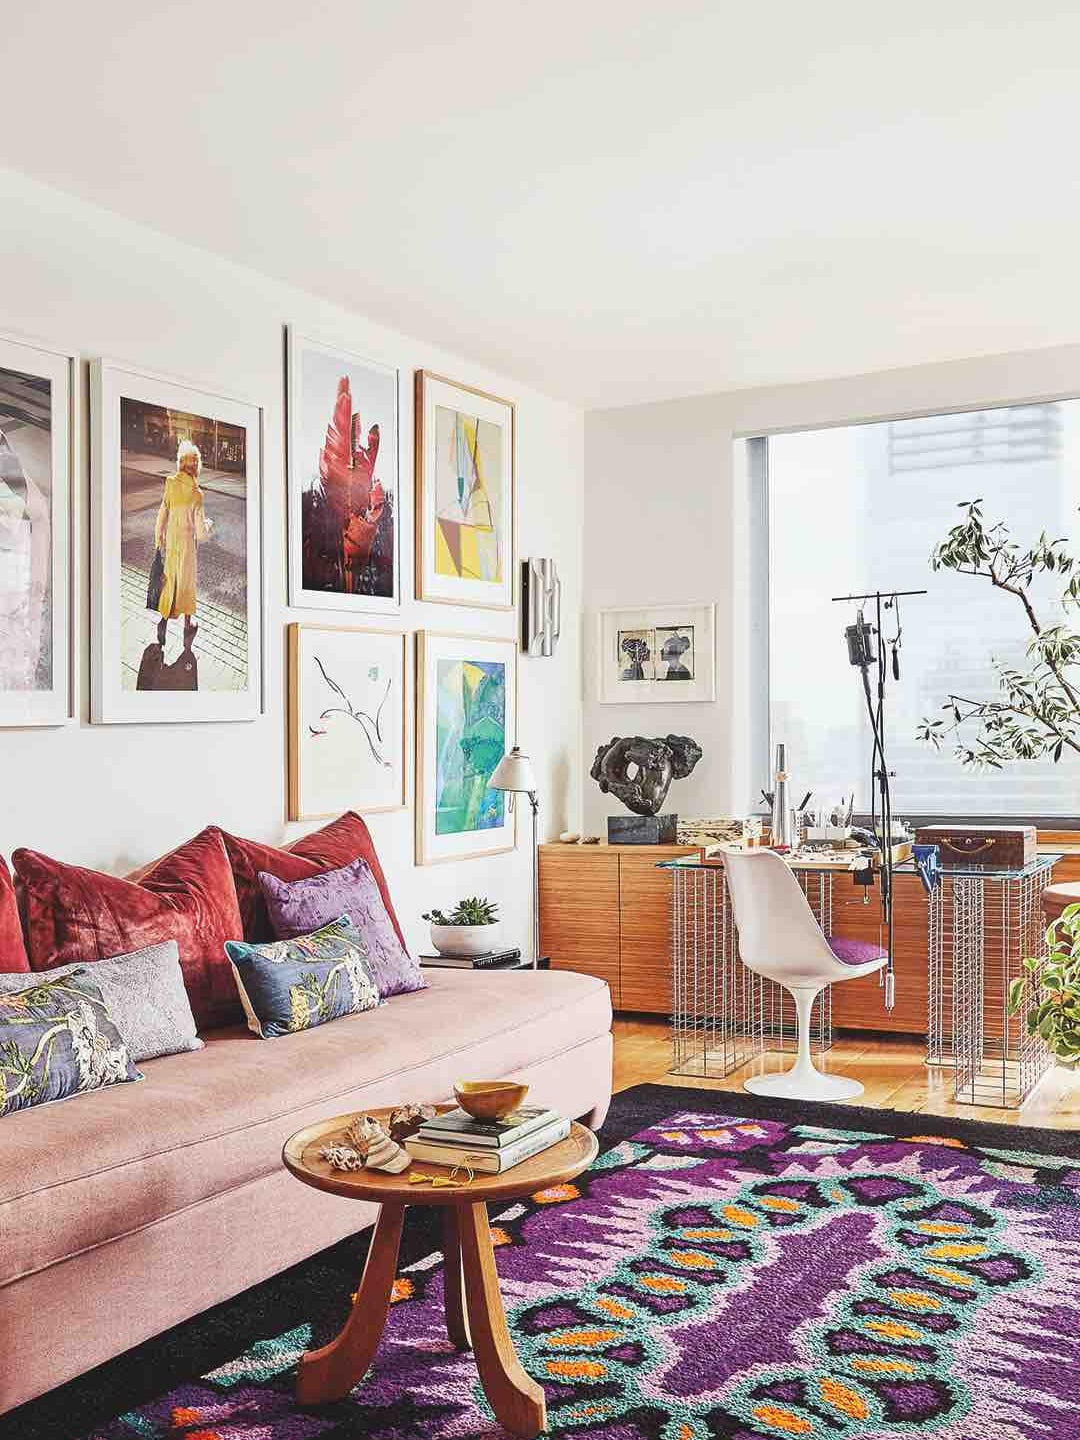 Living room with wall art and pink sofa